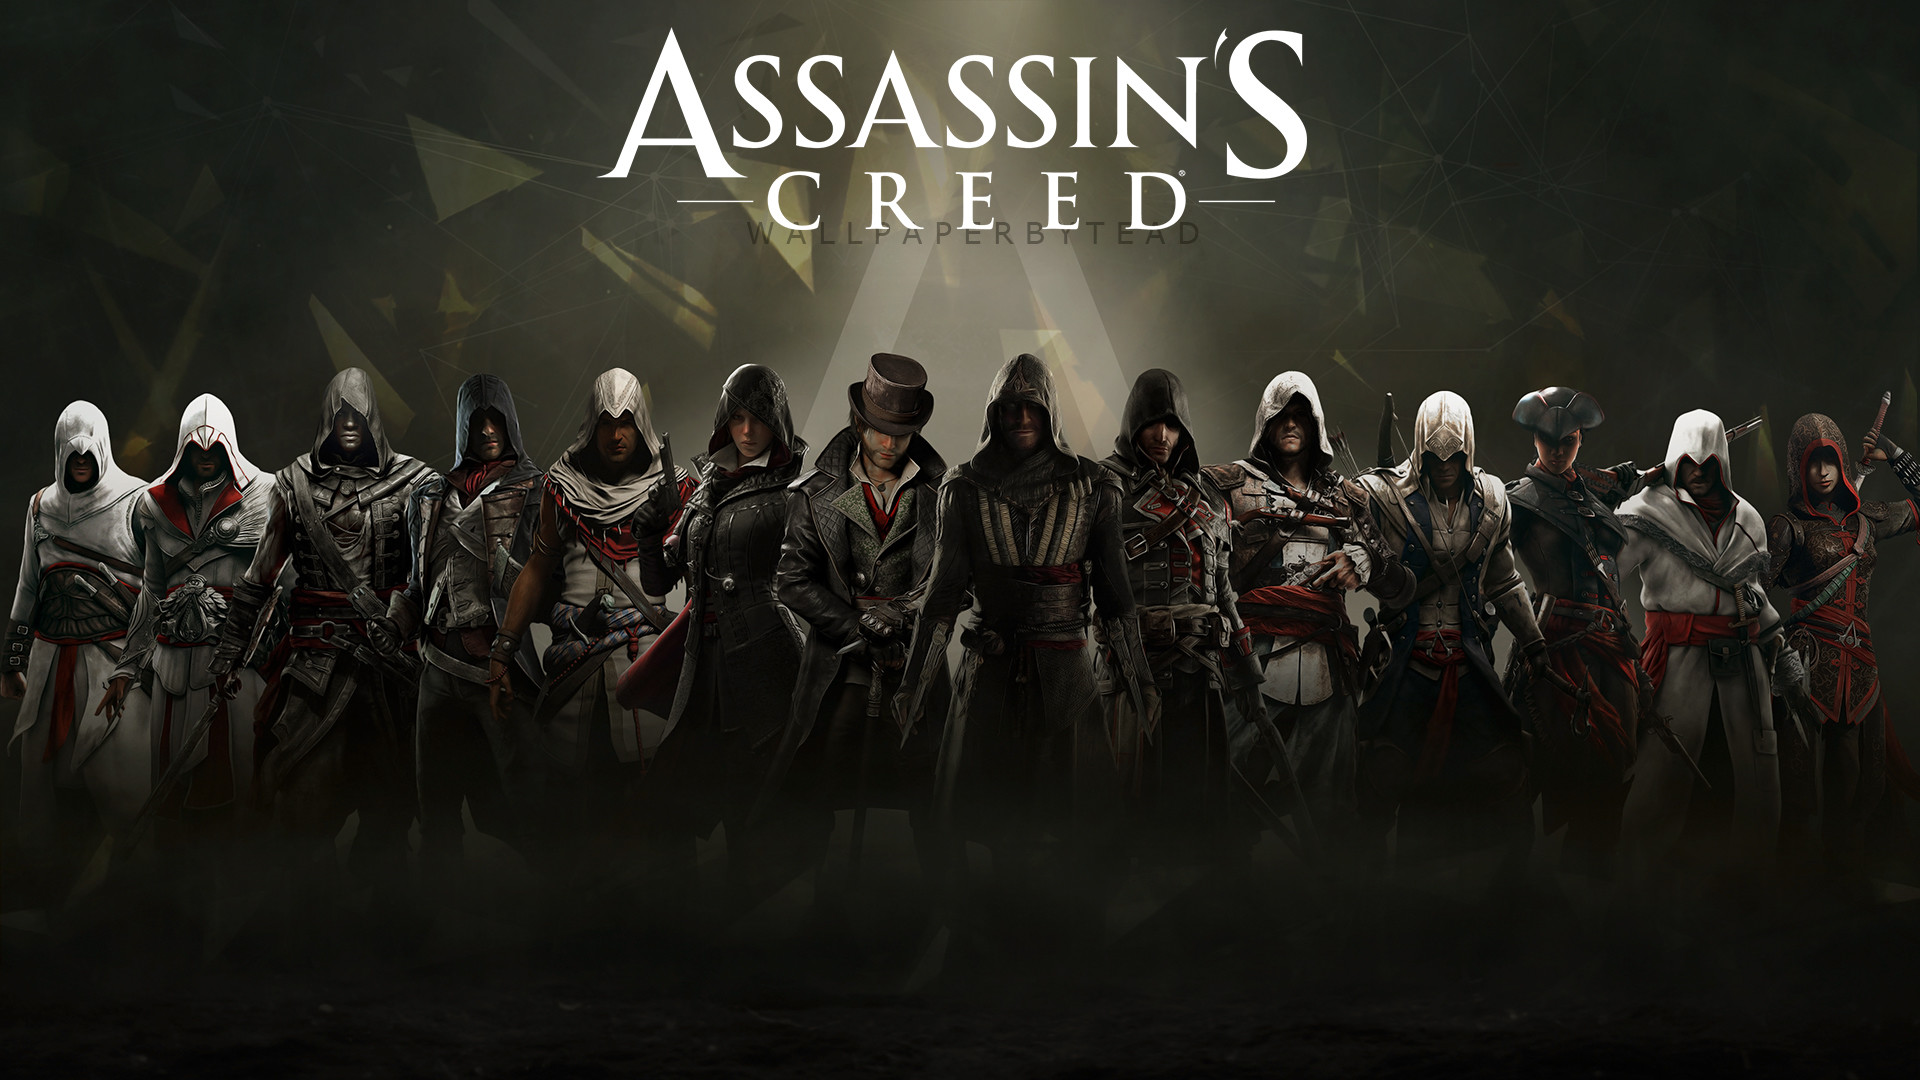 1920x1080 Assassin's Creed HD wallpaper 6 by teaD by santap555